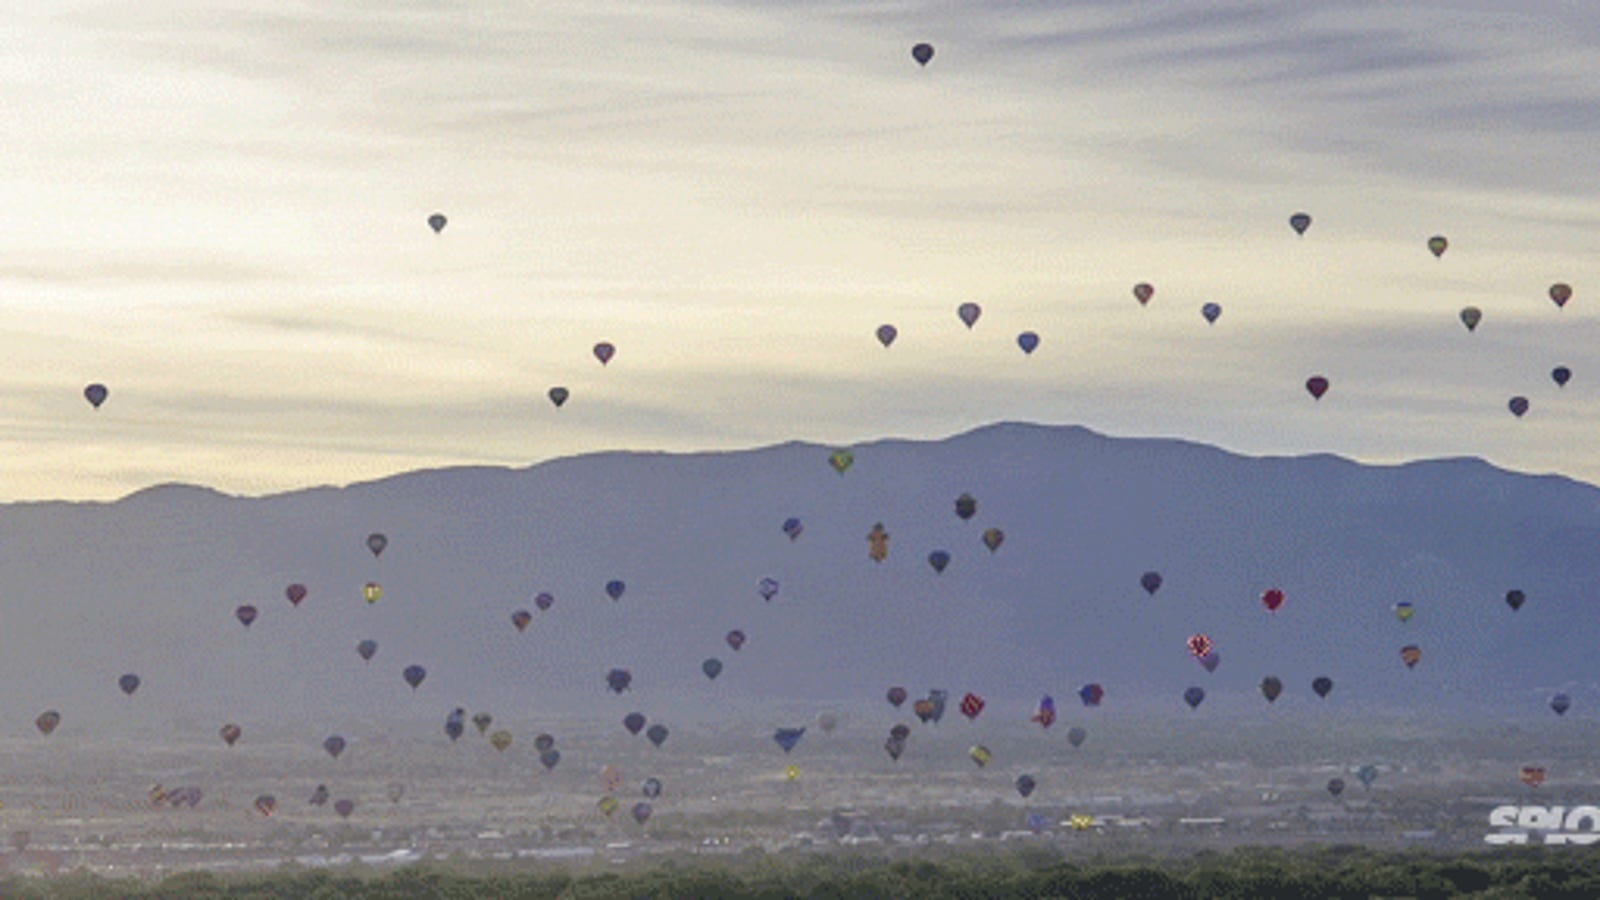 worlds largest hot air balloon festival